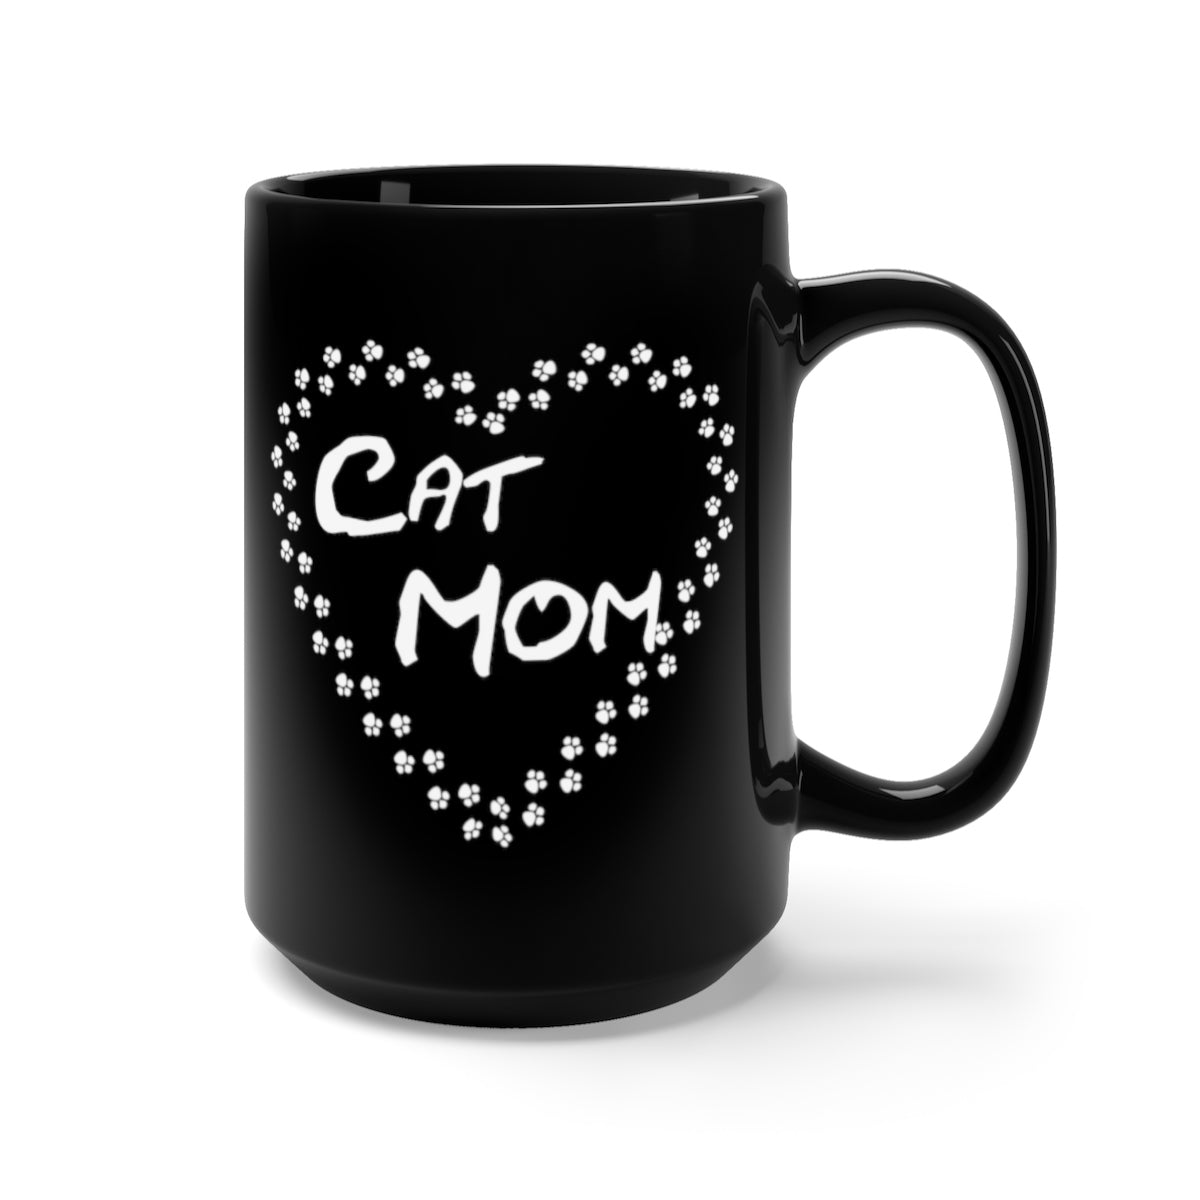 Cat mom paw heart black mug for cat lovers